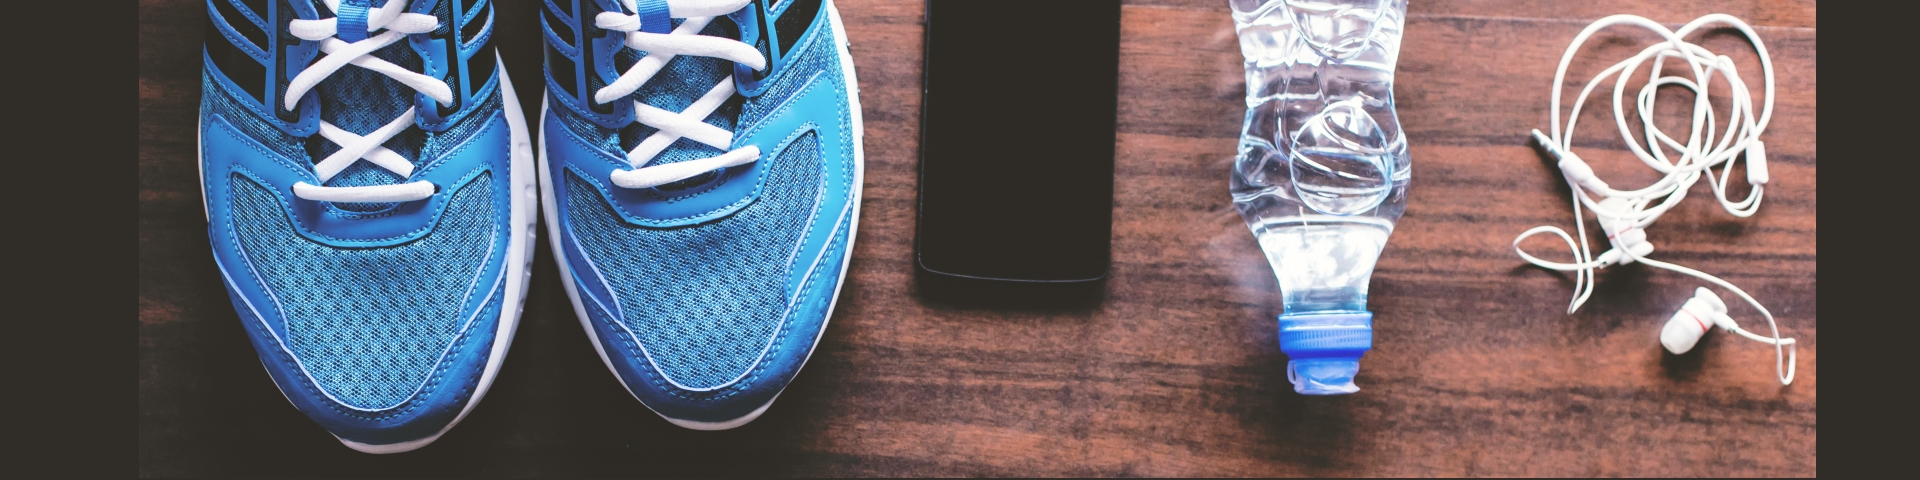 Trainers and water bottle